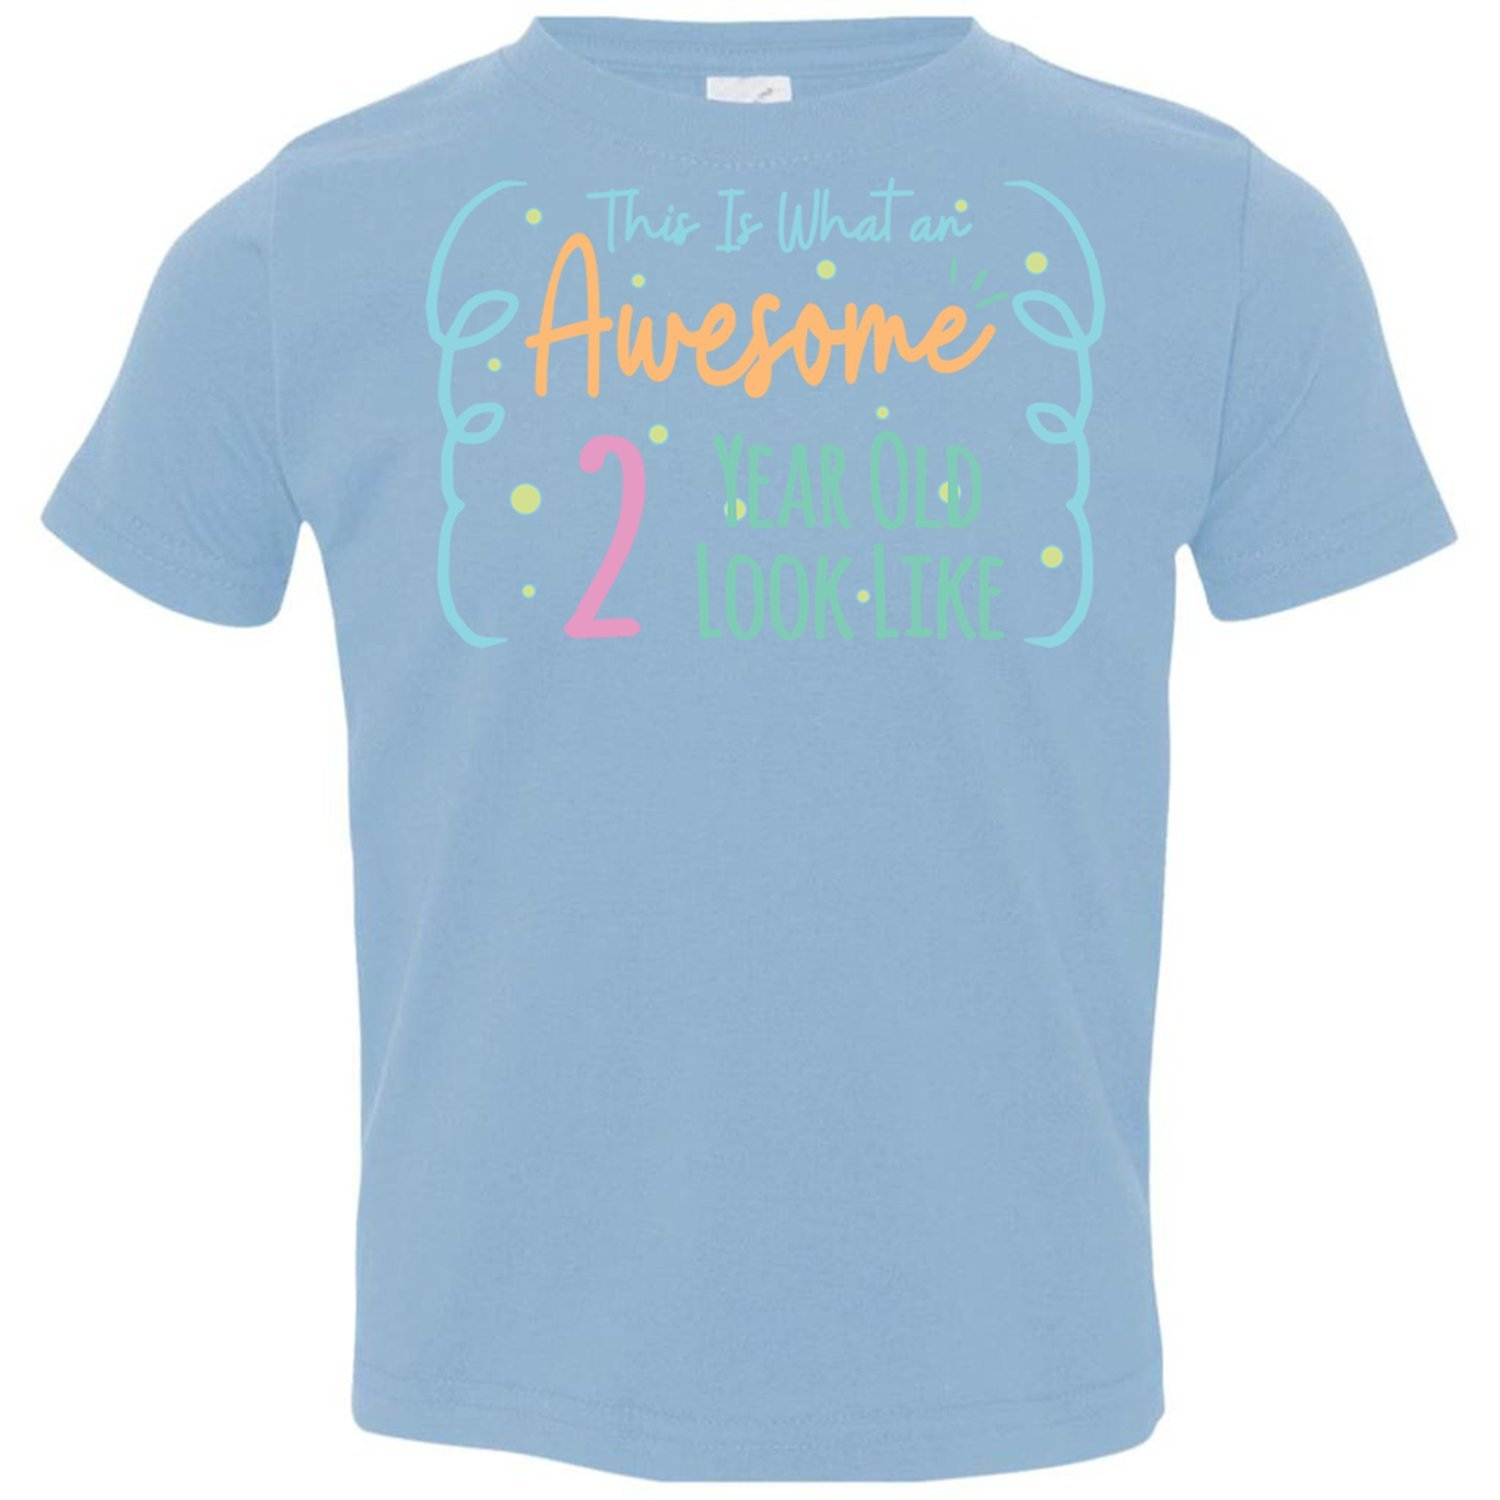 Pure S Designs This Is What An Awesome 2 Years Old Gift For Two Bday T Shirt 6607